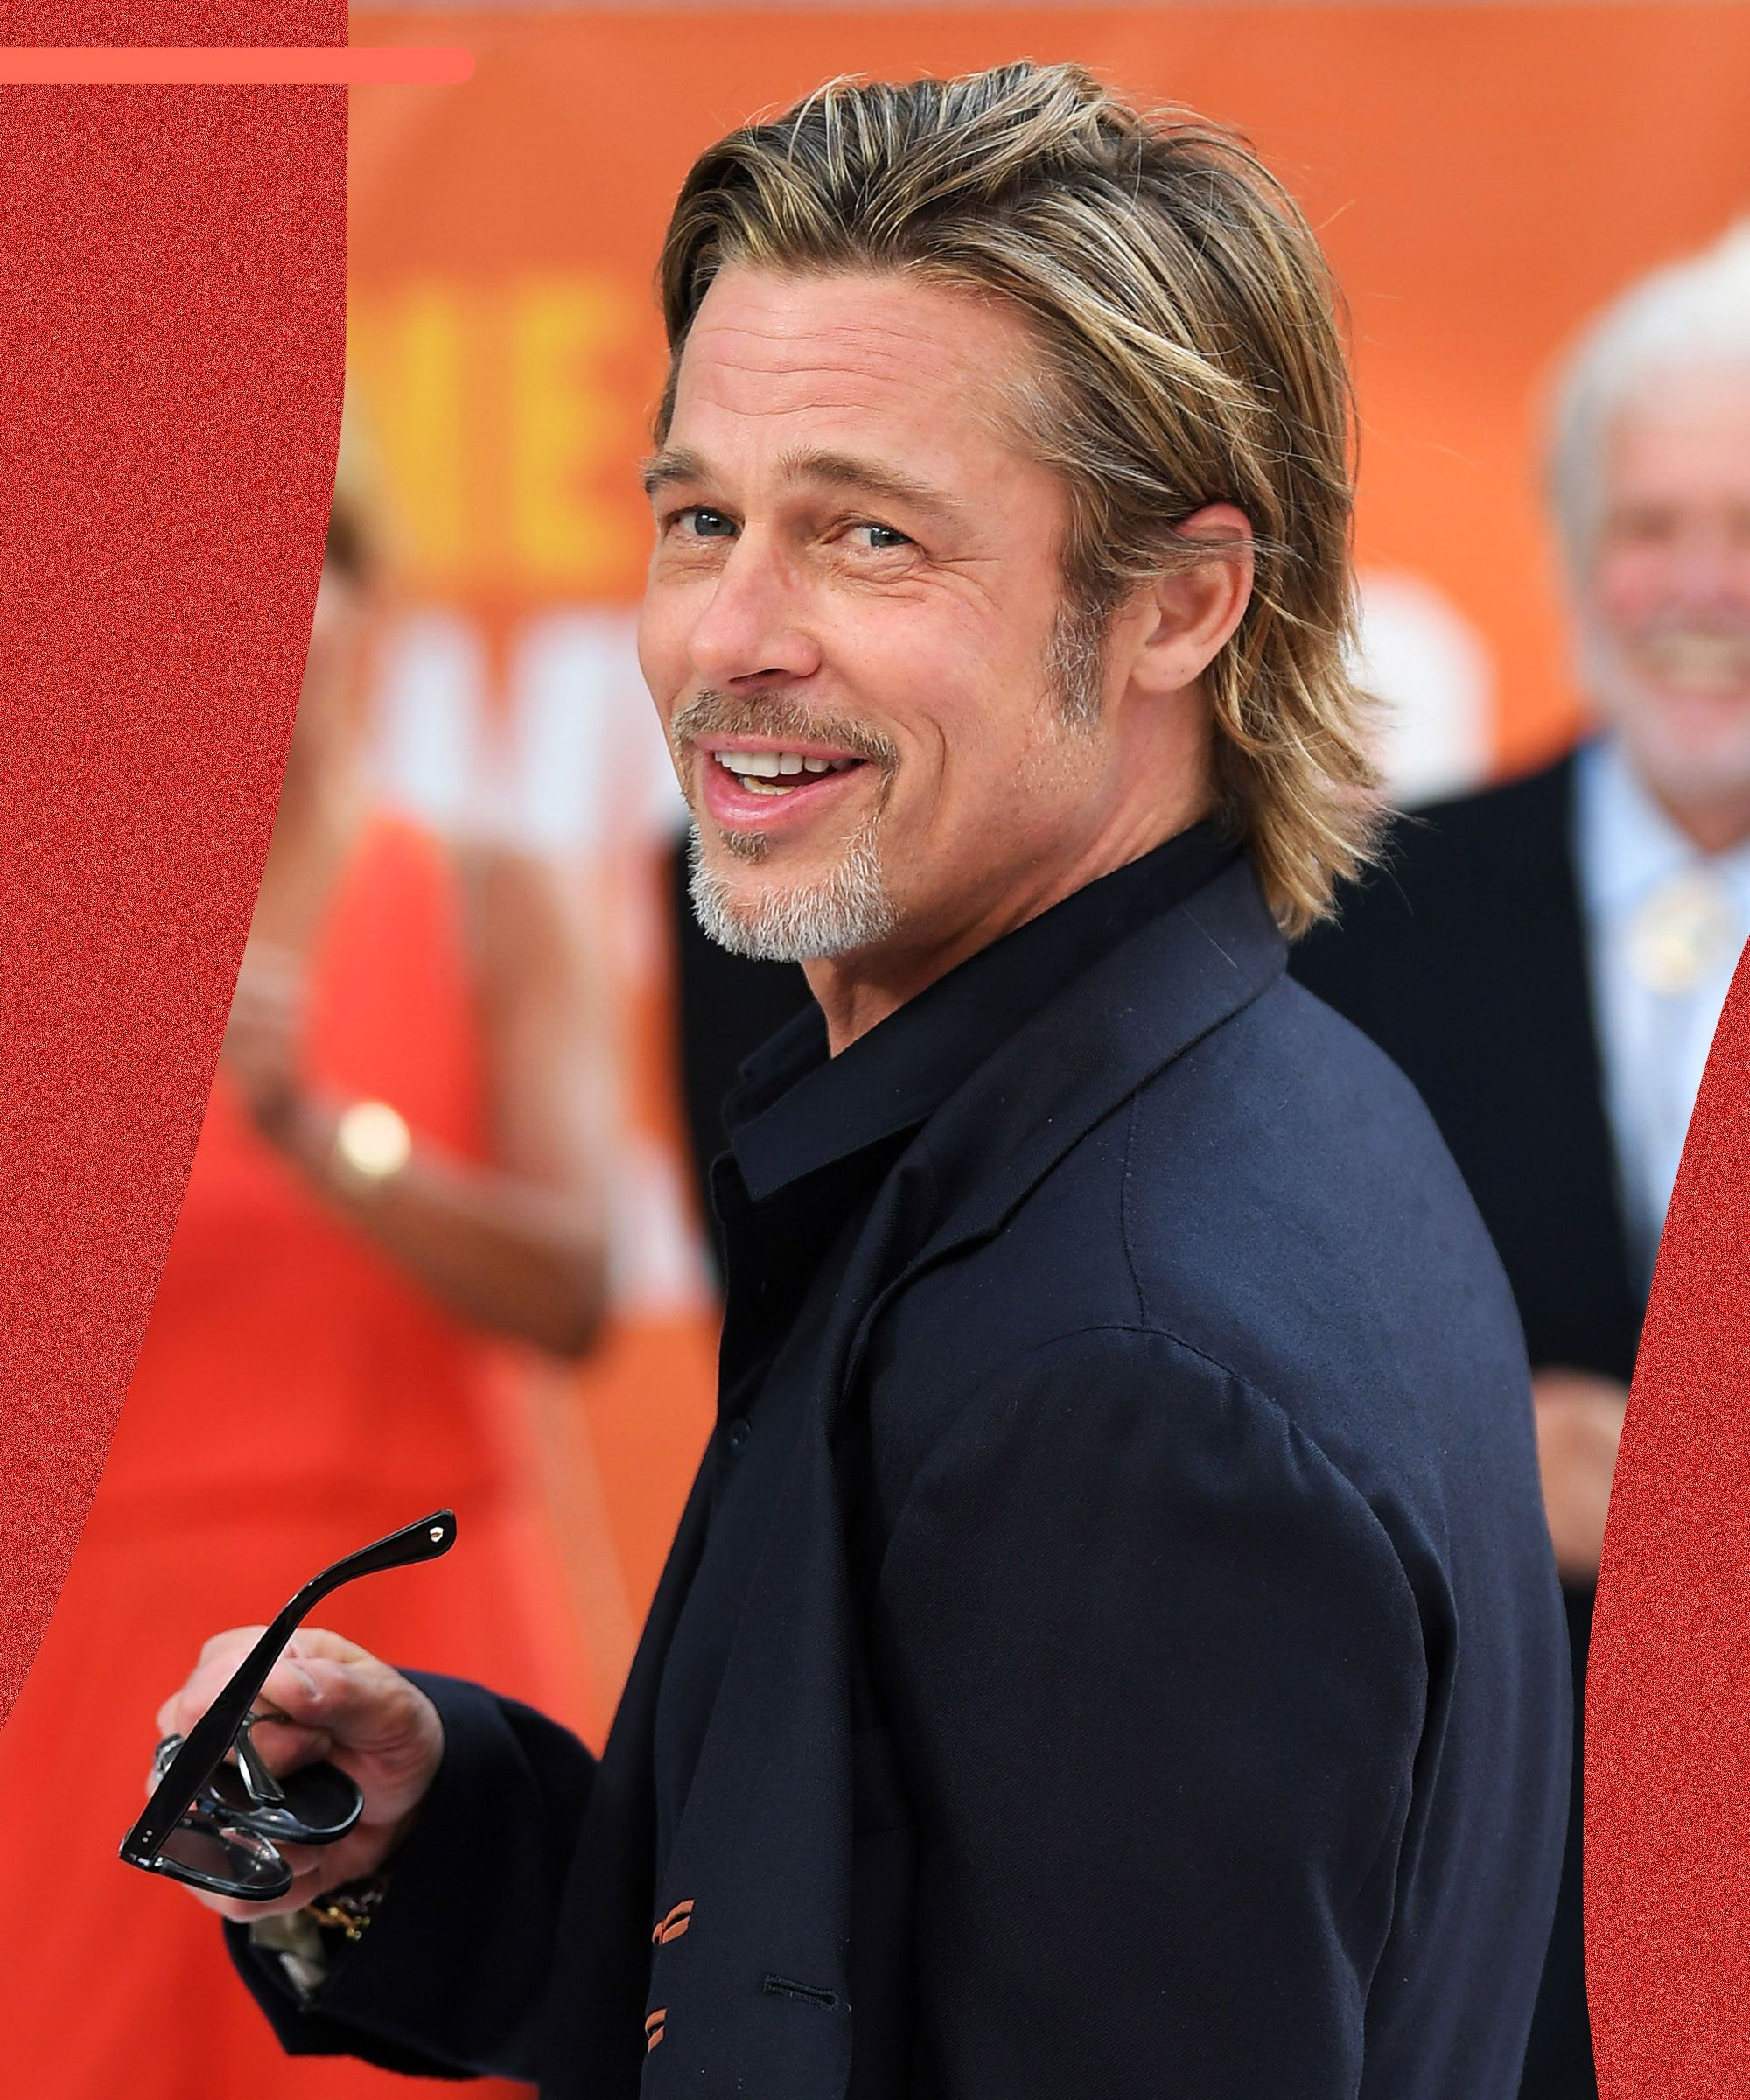 Did Brad Pitt Just Update The Couple Tattoo He Shares With Angelina Jolie Refinery29 Brad Pitt Brad Pitt And Angelina Jolie Angelina Jolie